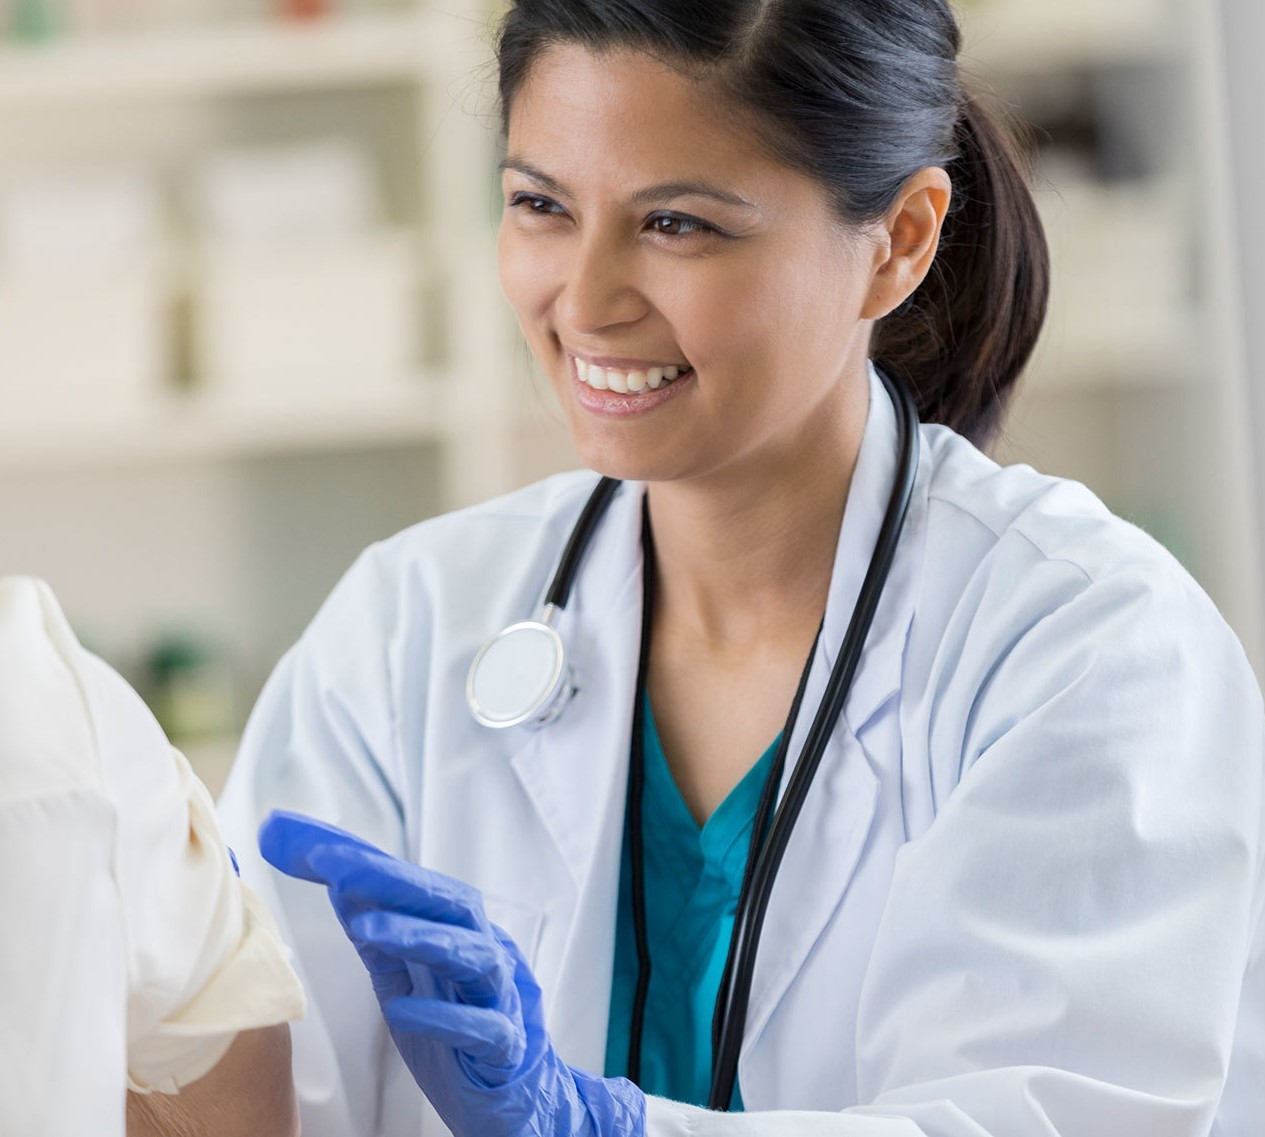 Doctor smiling while providing care